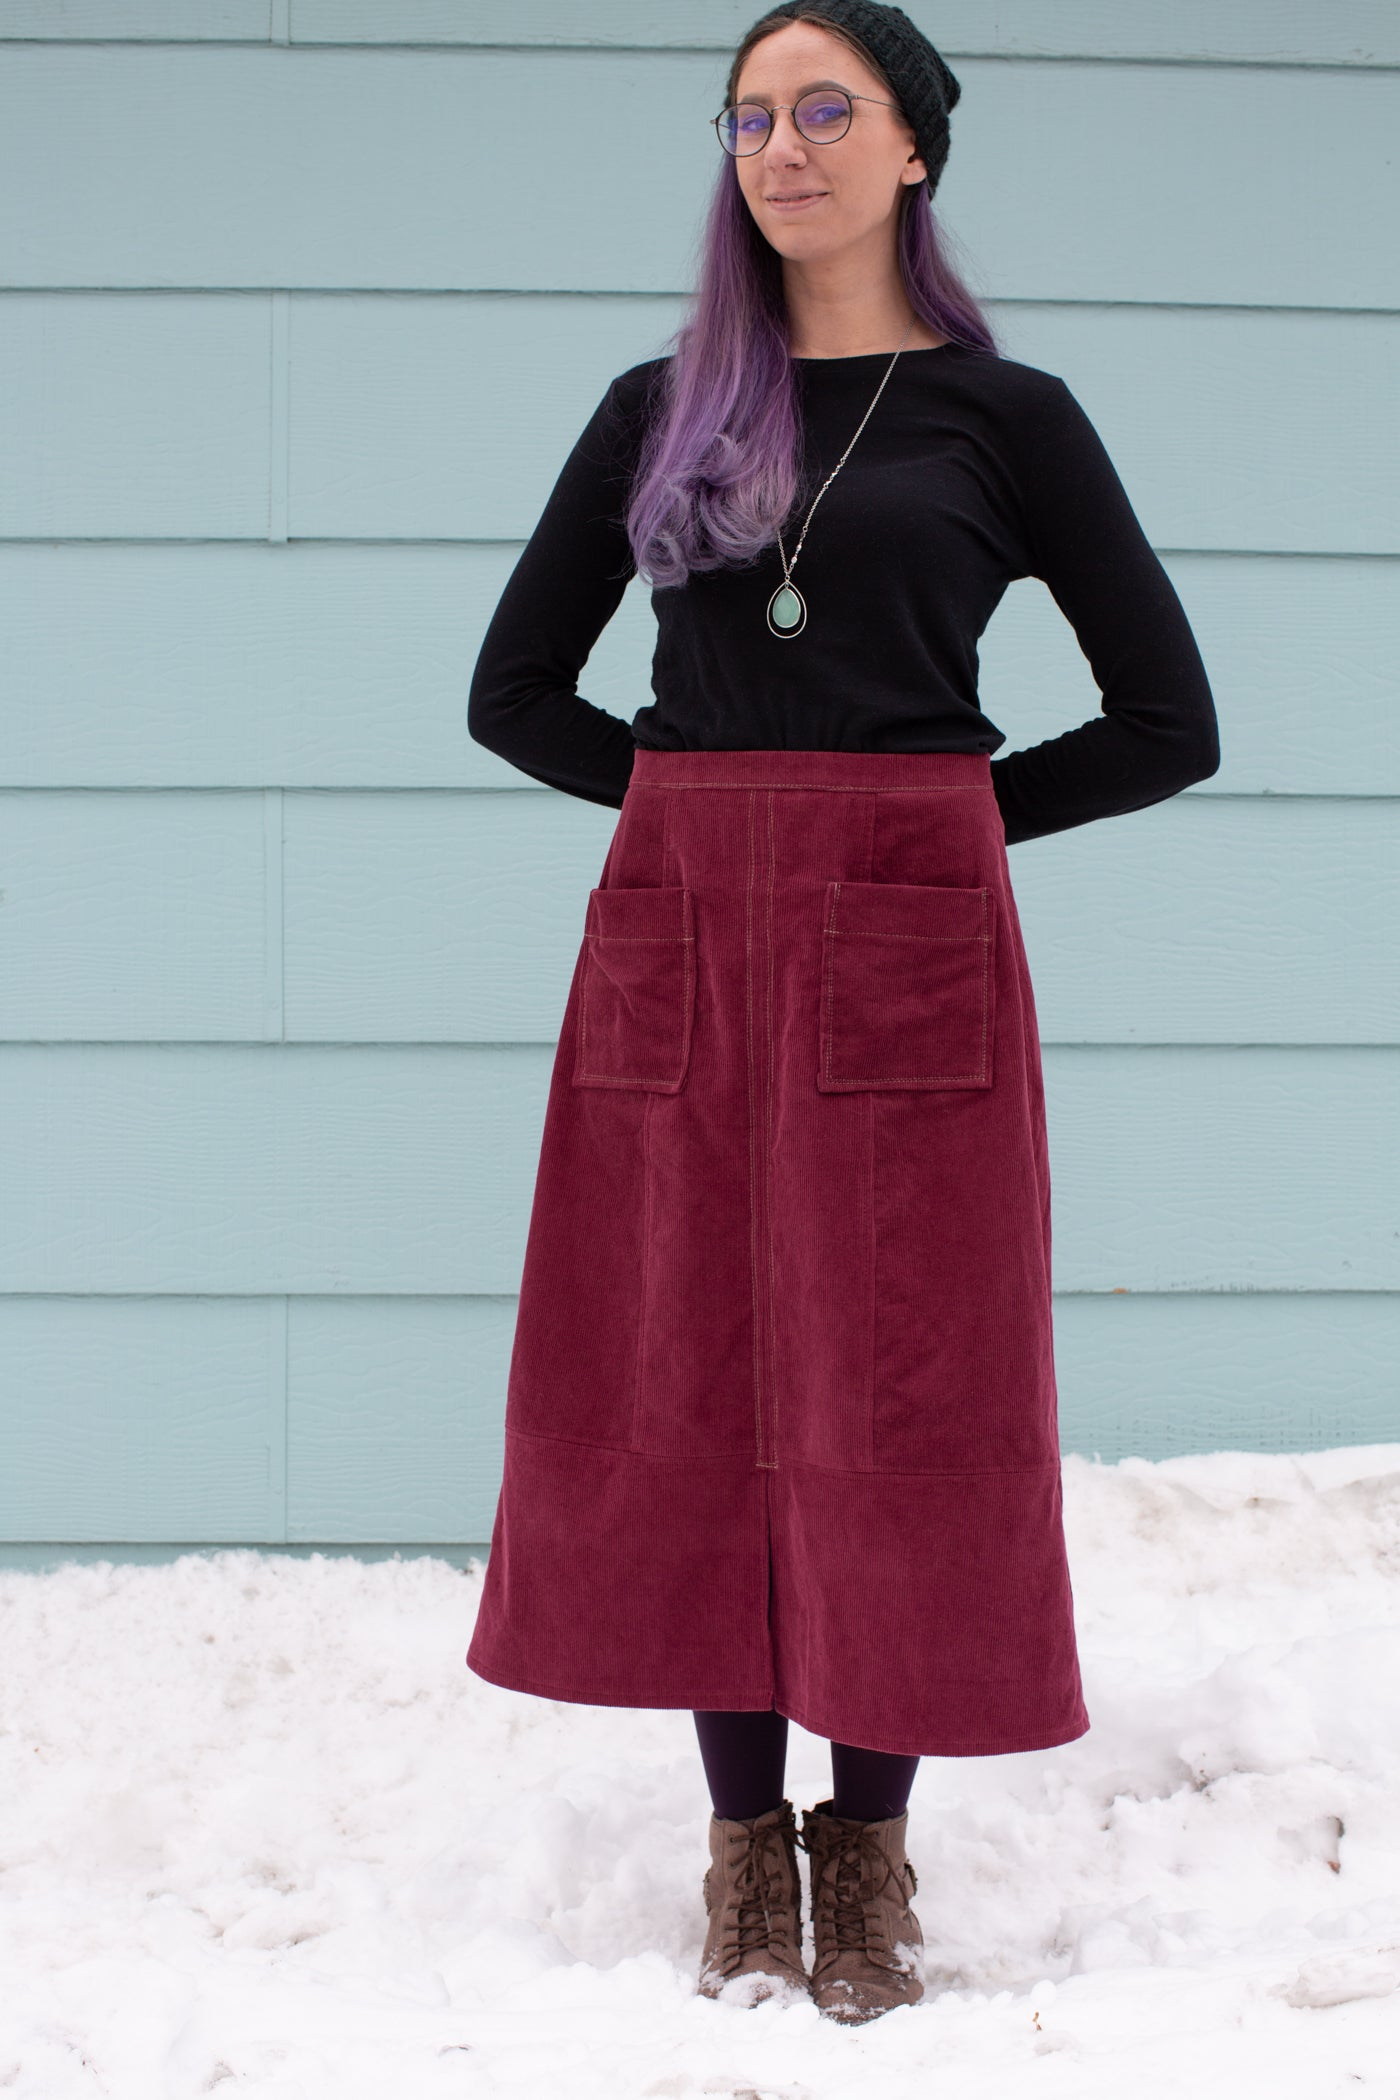 Aly standing in snow against a sea blue wall with her arms behind her back.  Aly is wearing a Robert Kaufman Corduroy skirt in merlot with a black long sleeve top.